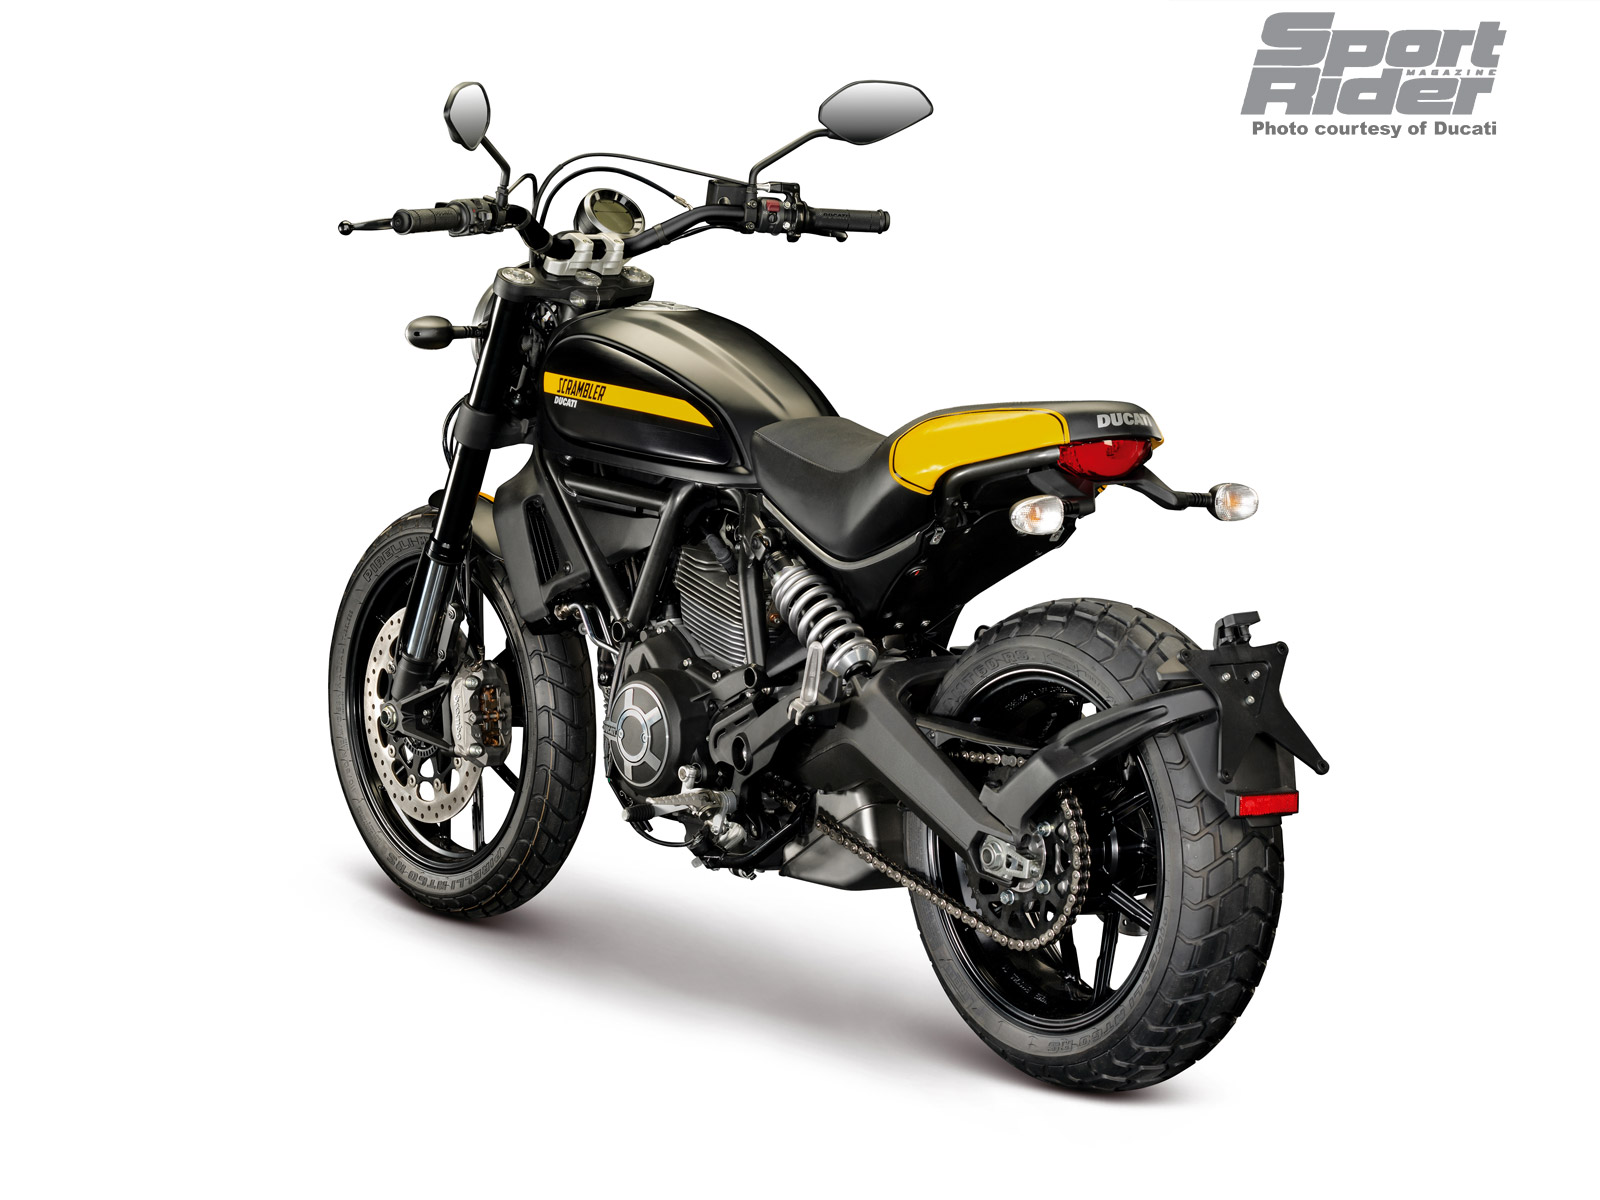 Marvelous 2015 Ducati Scrambler First Ride Review Cycle World Machost Co Dining Chair Design Ideas Machostcouk